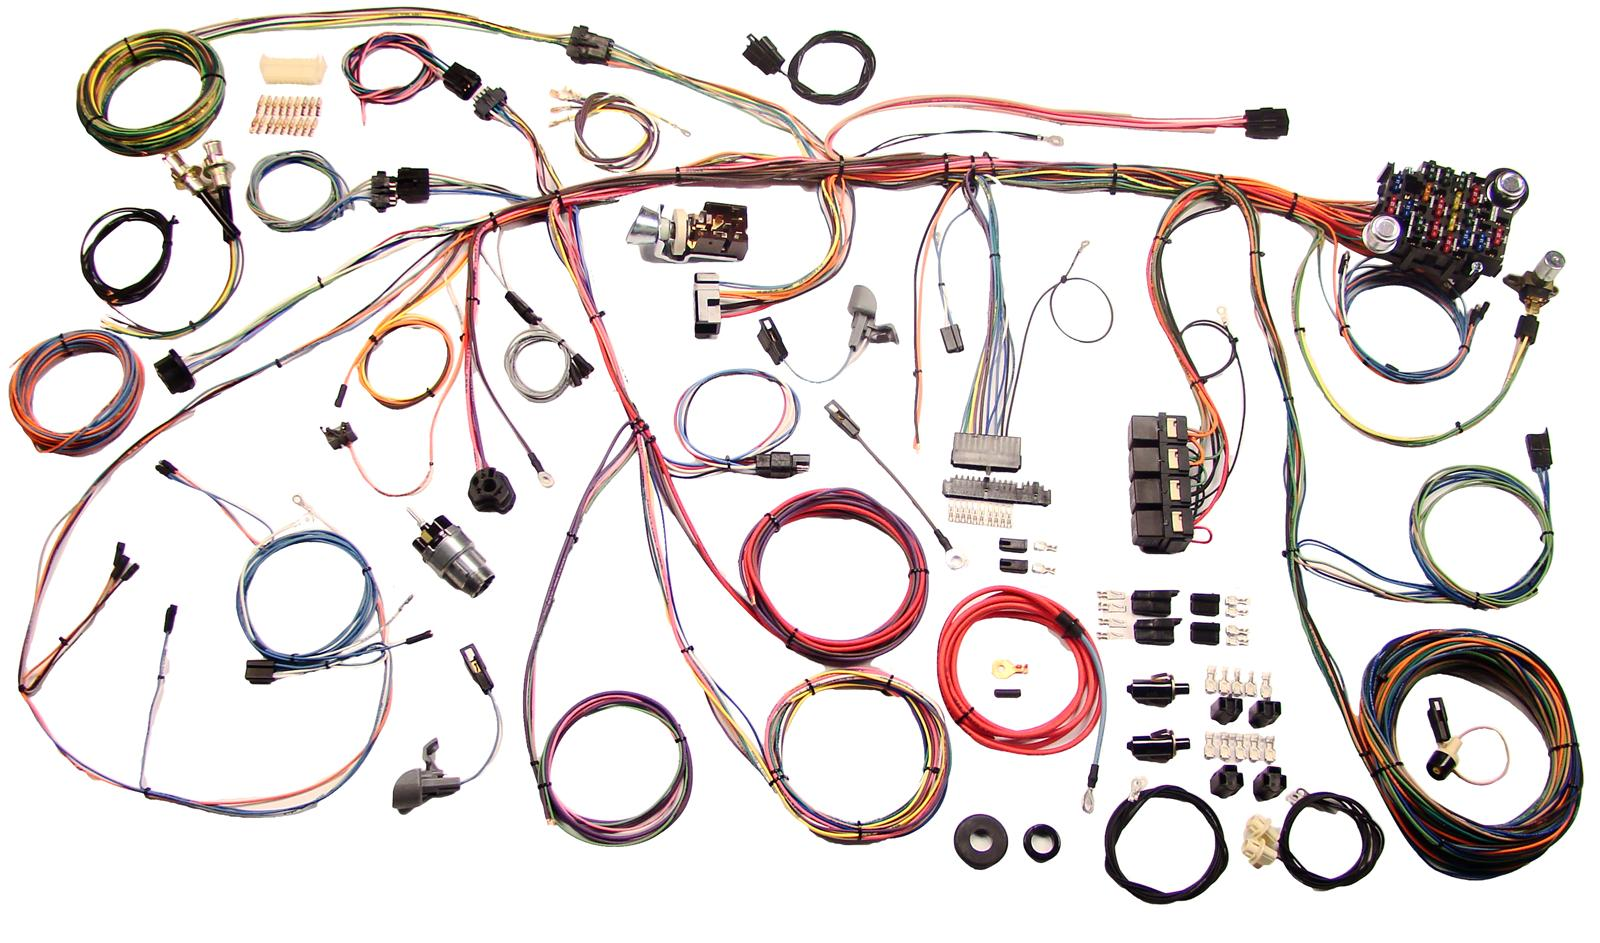 hight resolution of 1973 mustang wiring harness wiring diagrams 1988 ford mustang wiring diagram 1973 mustang wiring harness